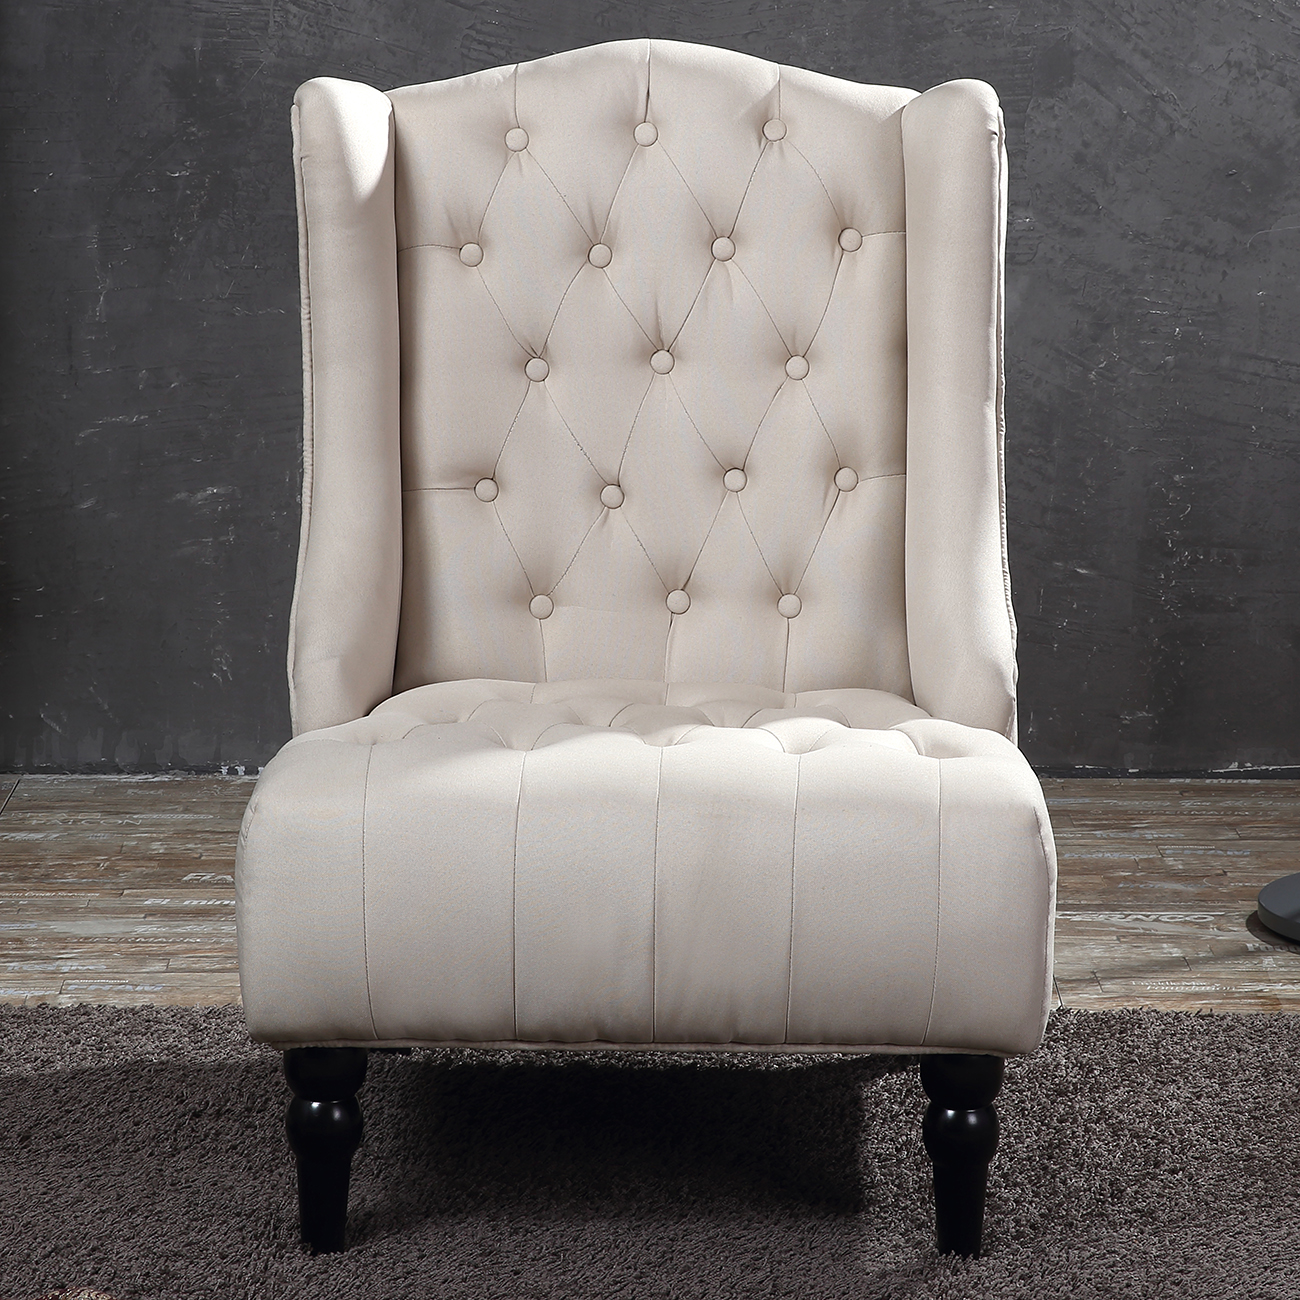 wing back accent chairs wingback accent chair tall high back living room tufted 22164 | 014 hg 30322 wh 2